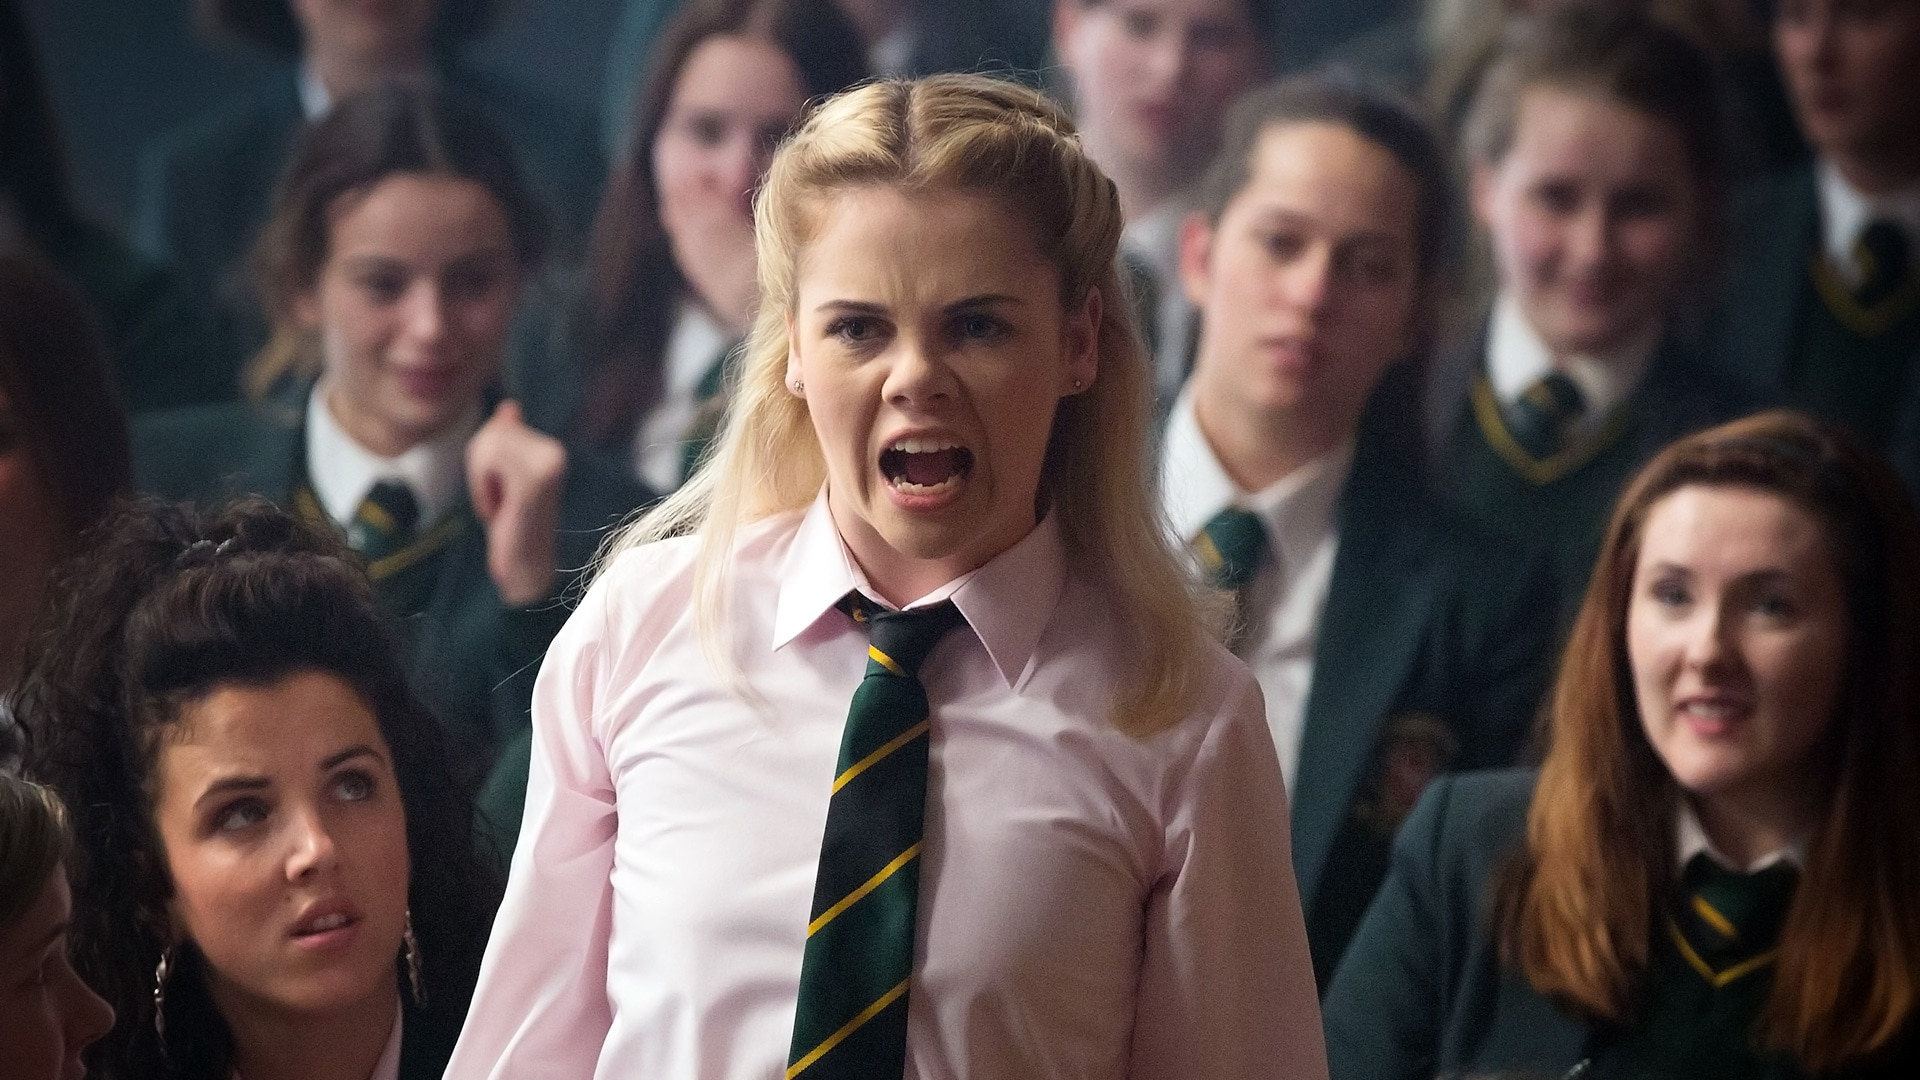 Derry Girls Starts Tonight On Channel 4 – Here's What You Need To Know